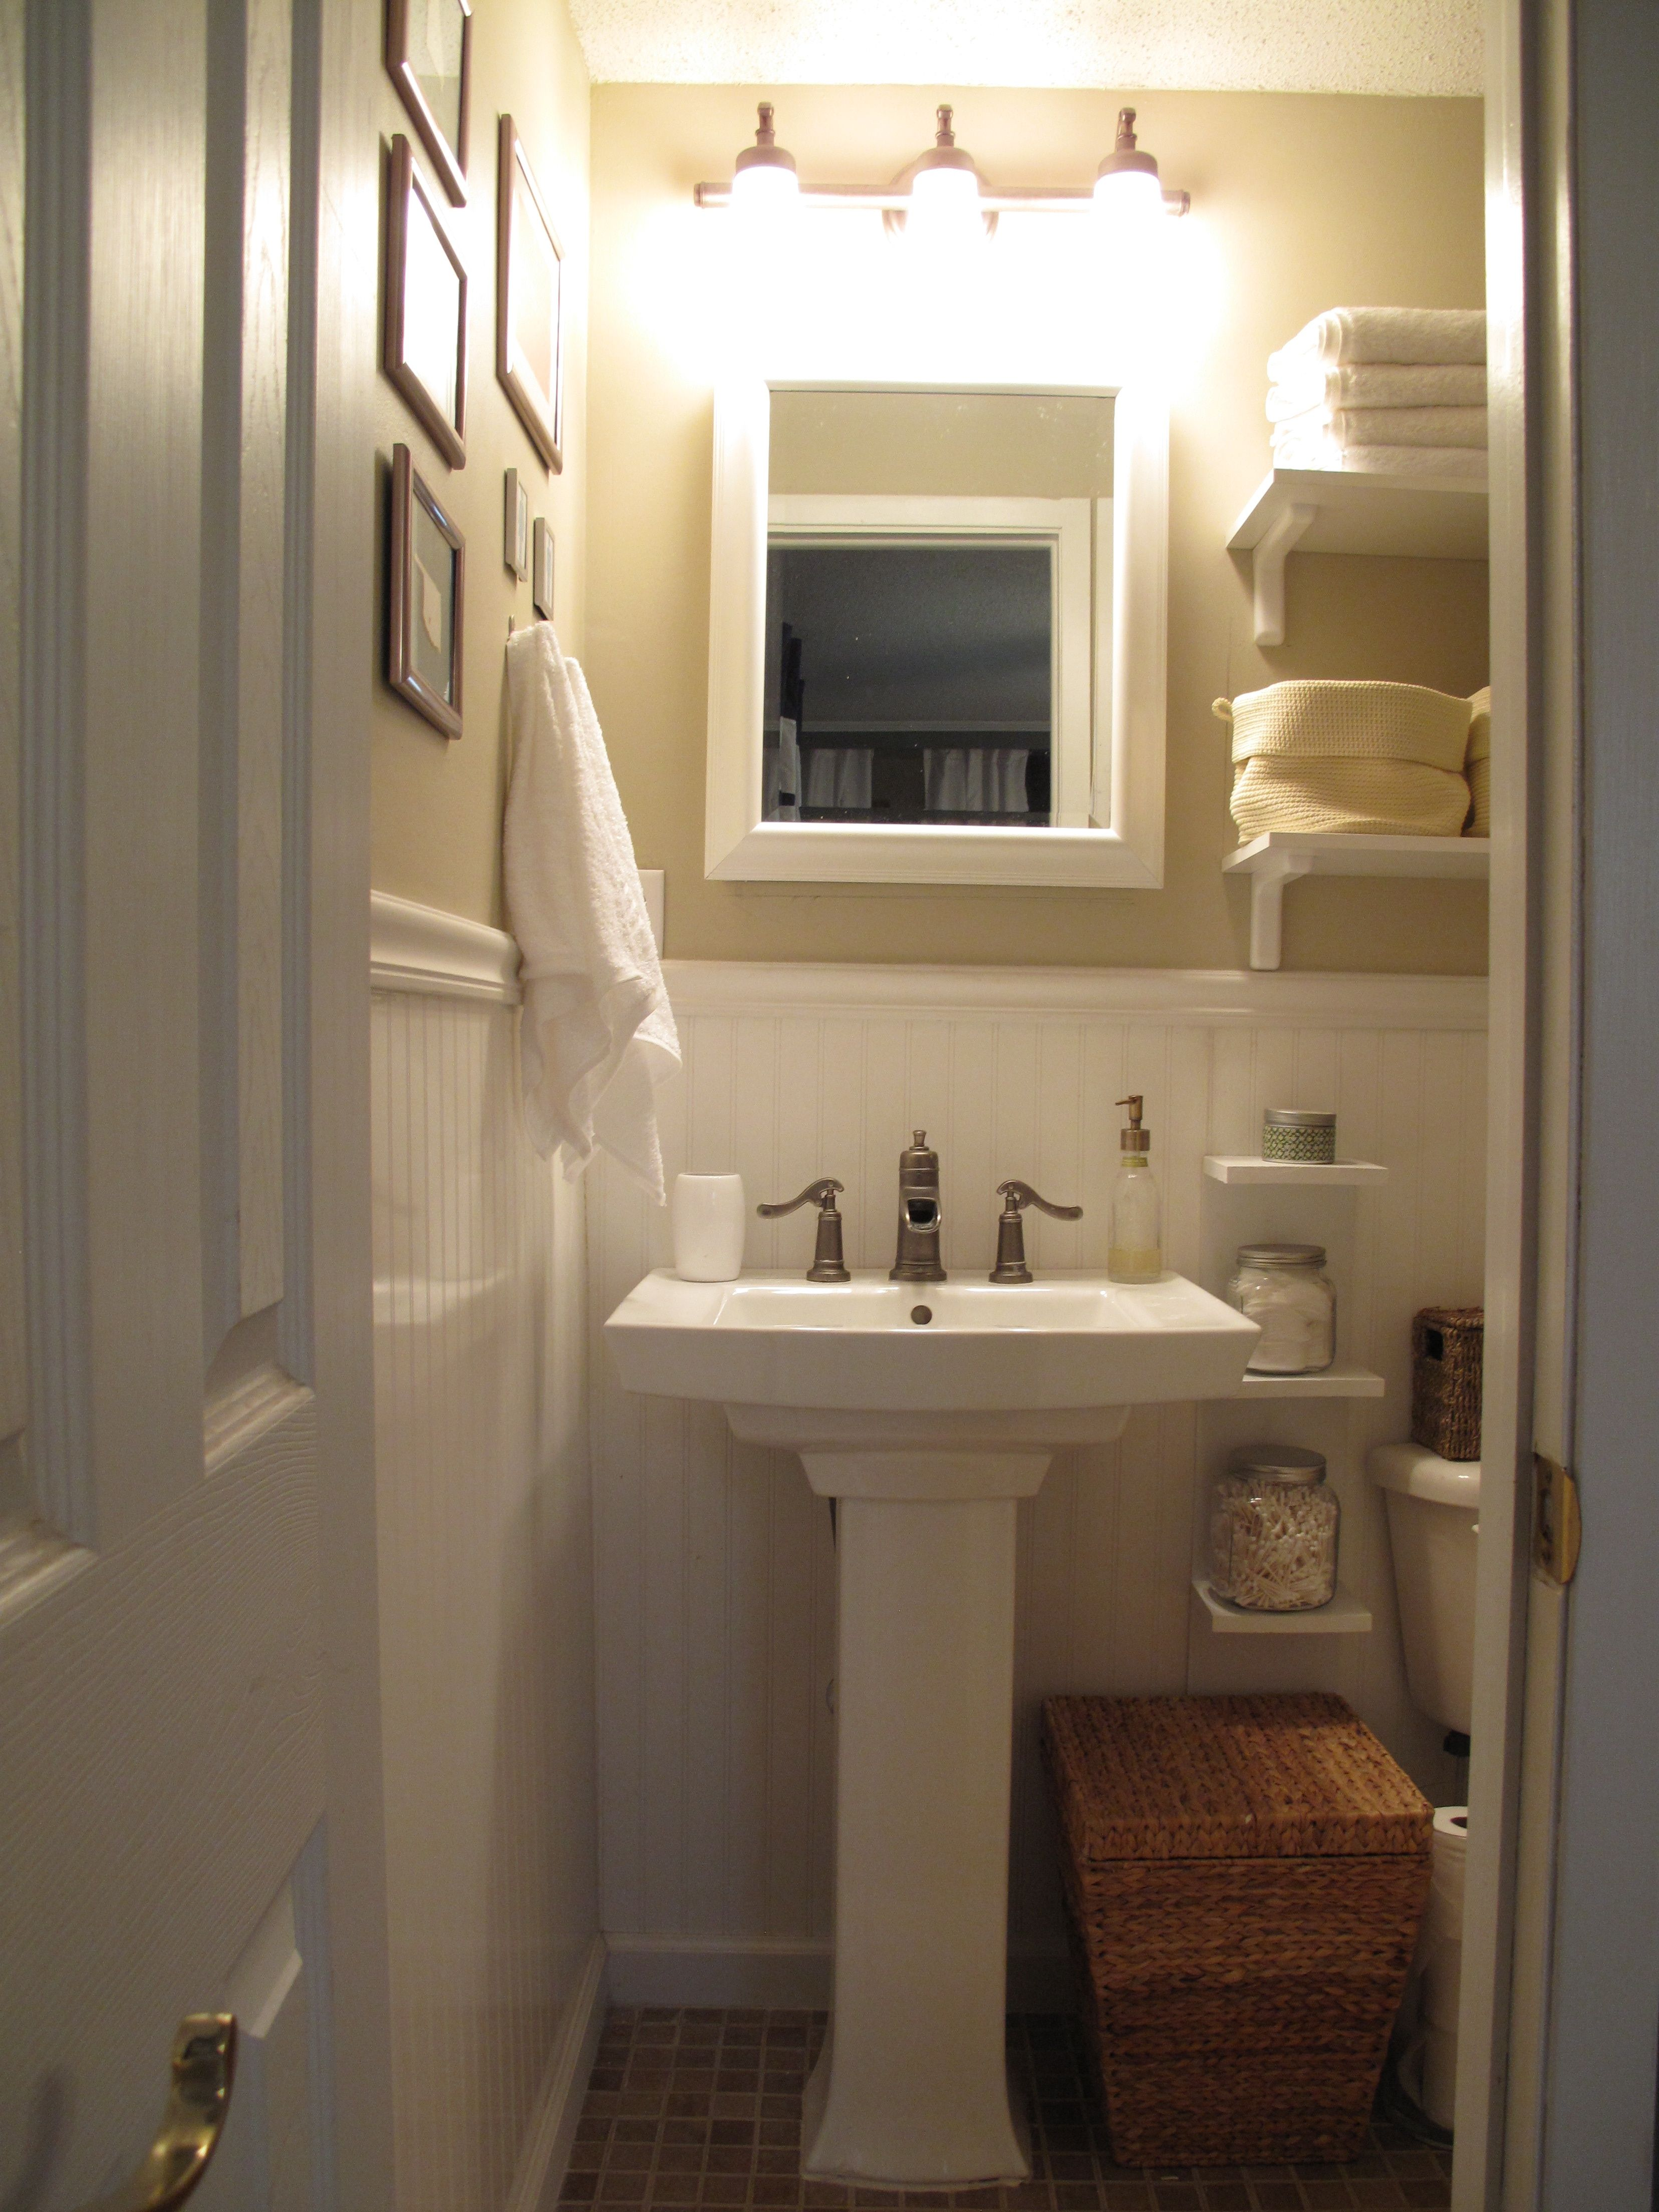 storage for small bathrooms with pedestal sinks | bathroom